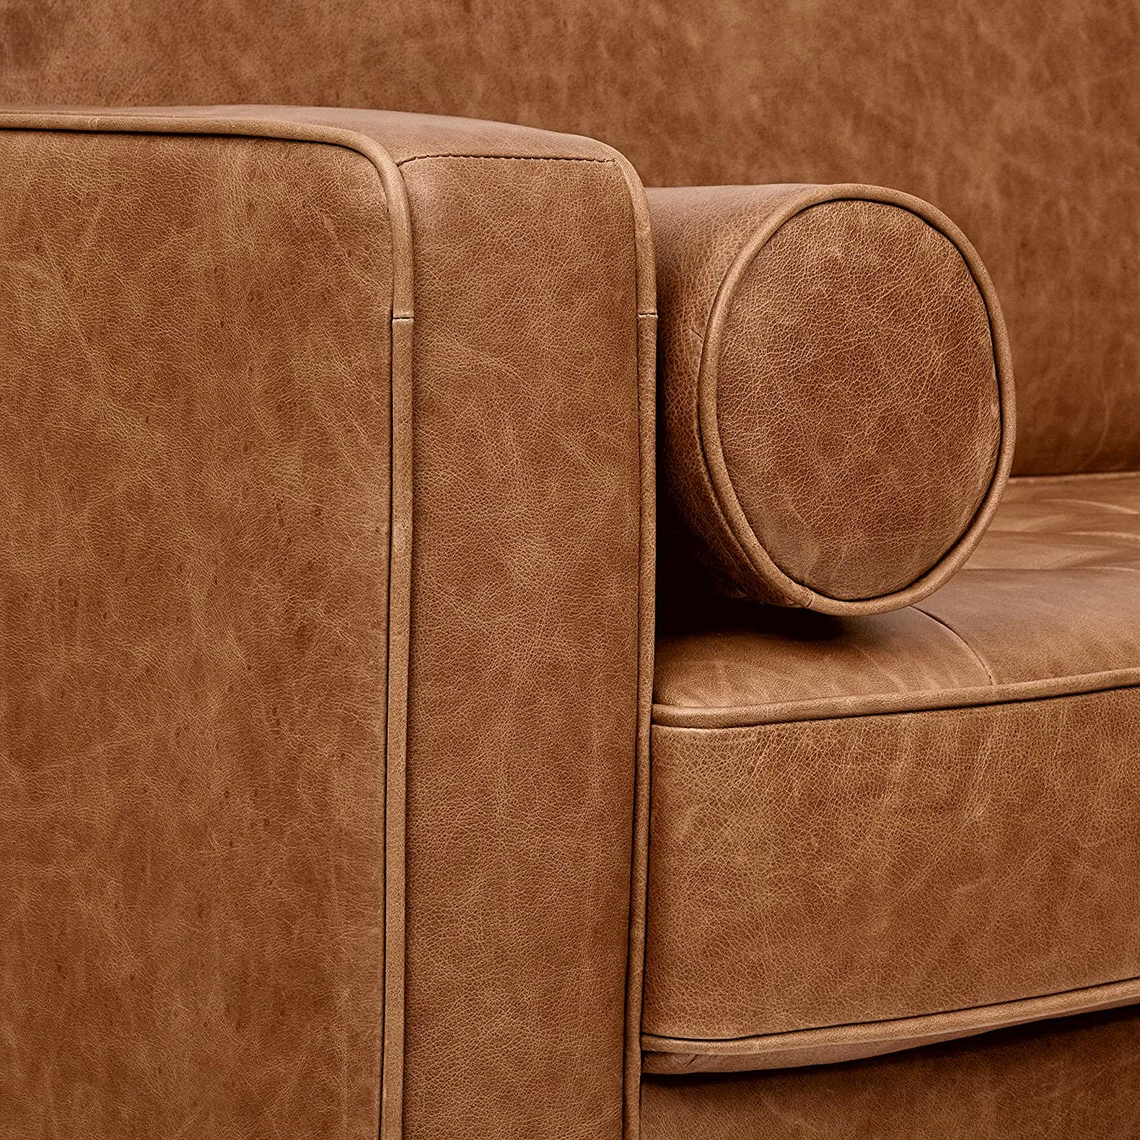 Florence Mid Century Modern Right Sectional Sofas Cognac Tan Within Most Current Cognac Leather Modern Couch Leather Couch Brown Mid (View 12 of 20)